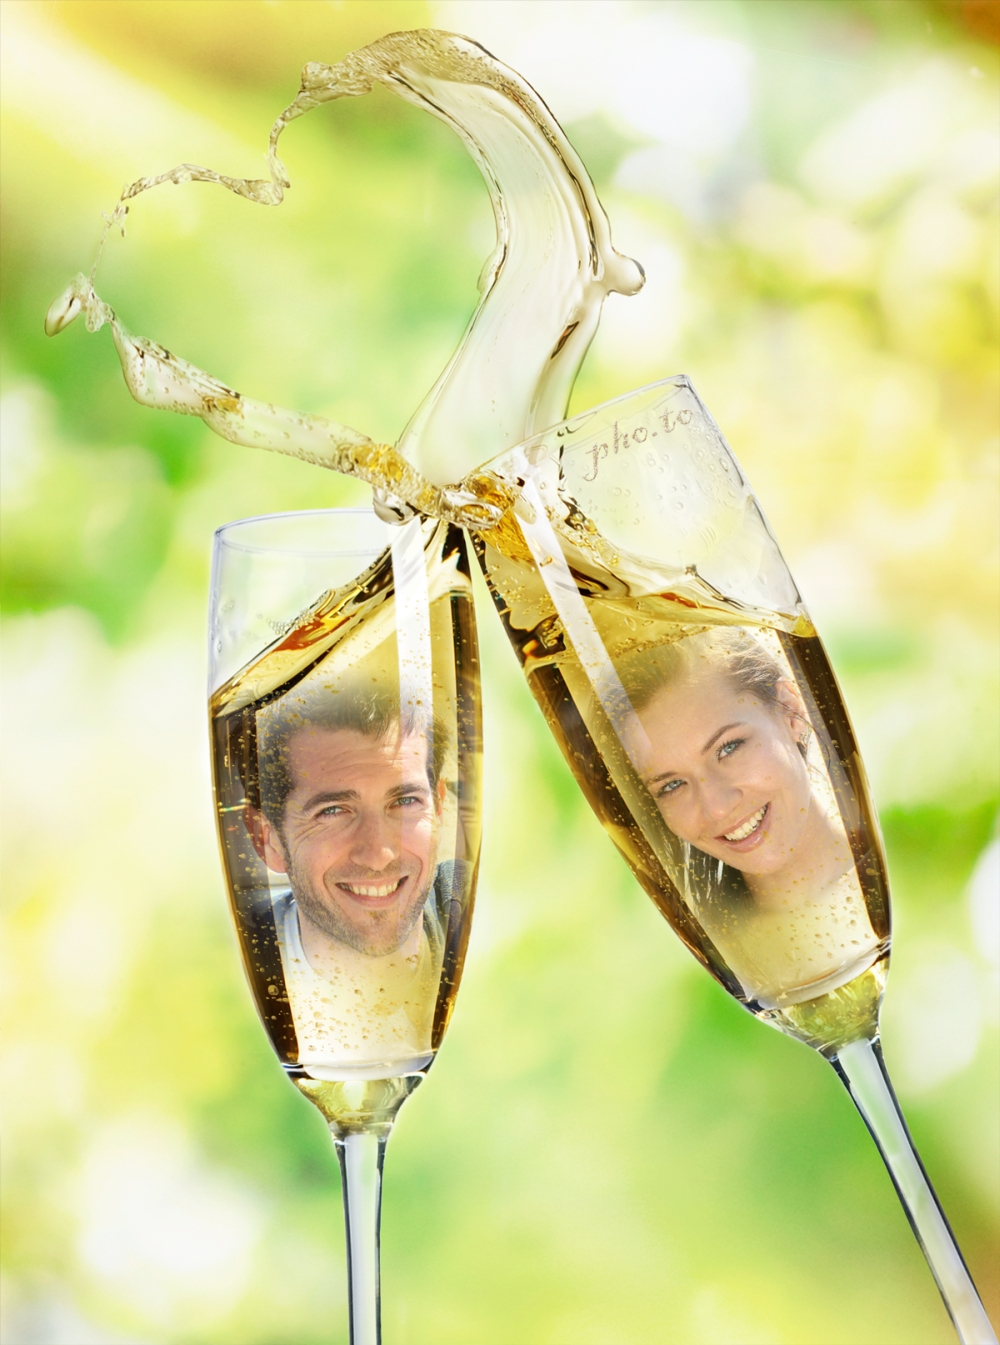 Bride and groom reflected in sparkling wine glasses.